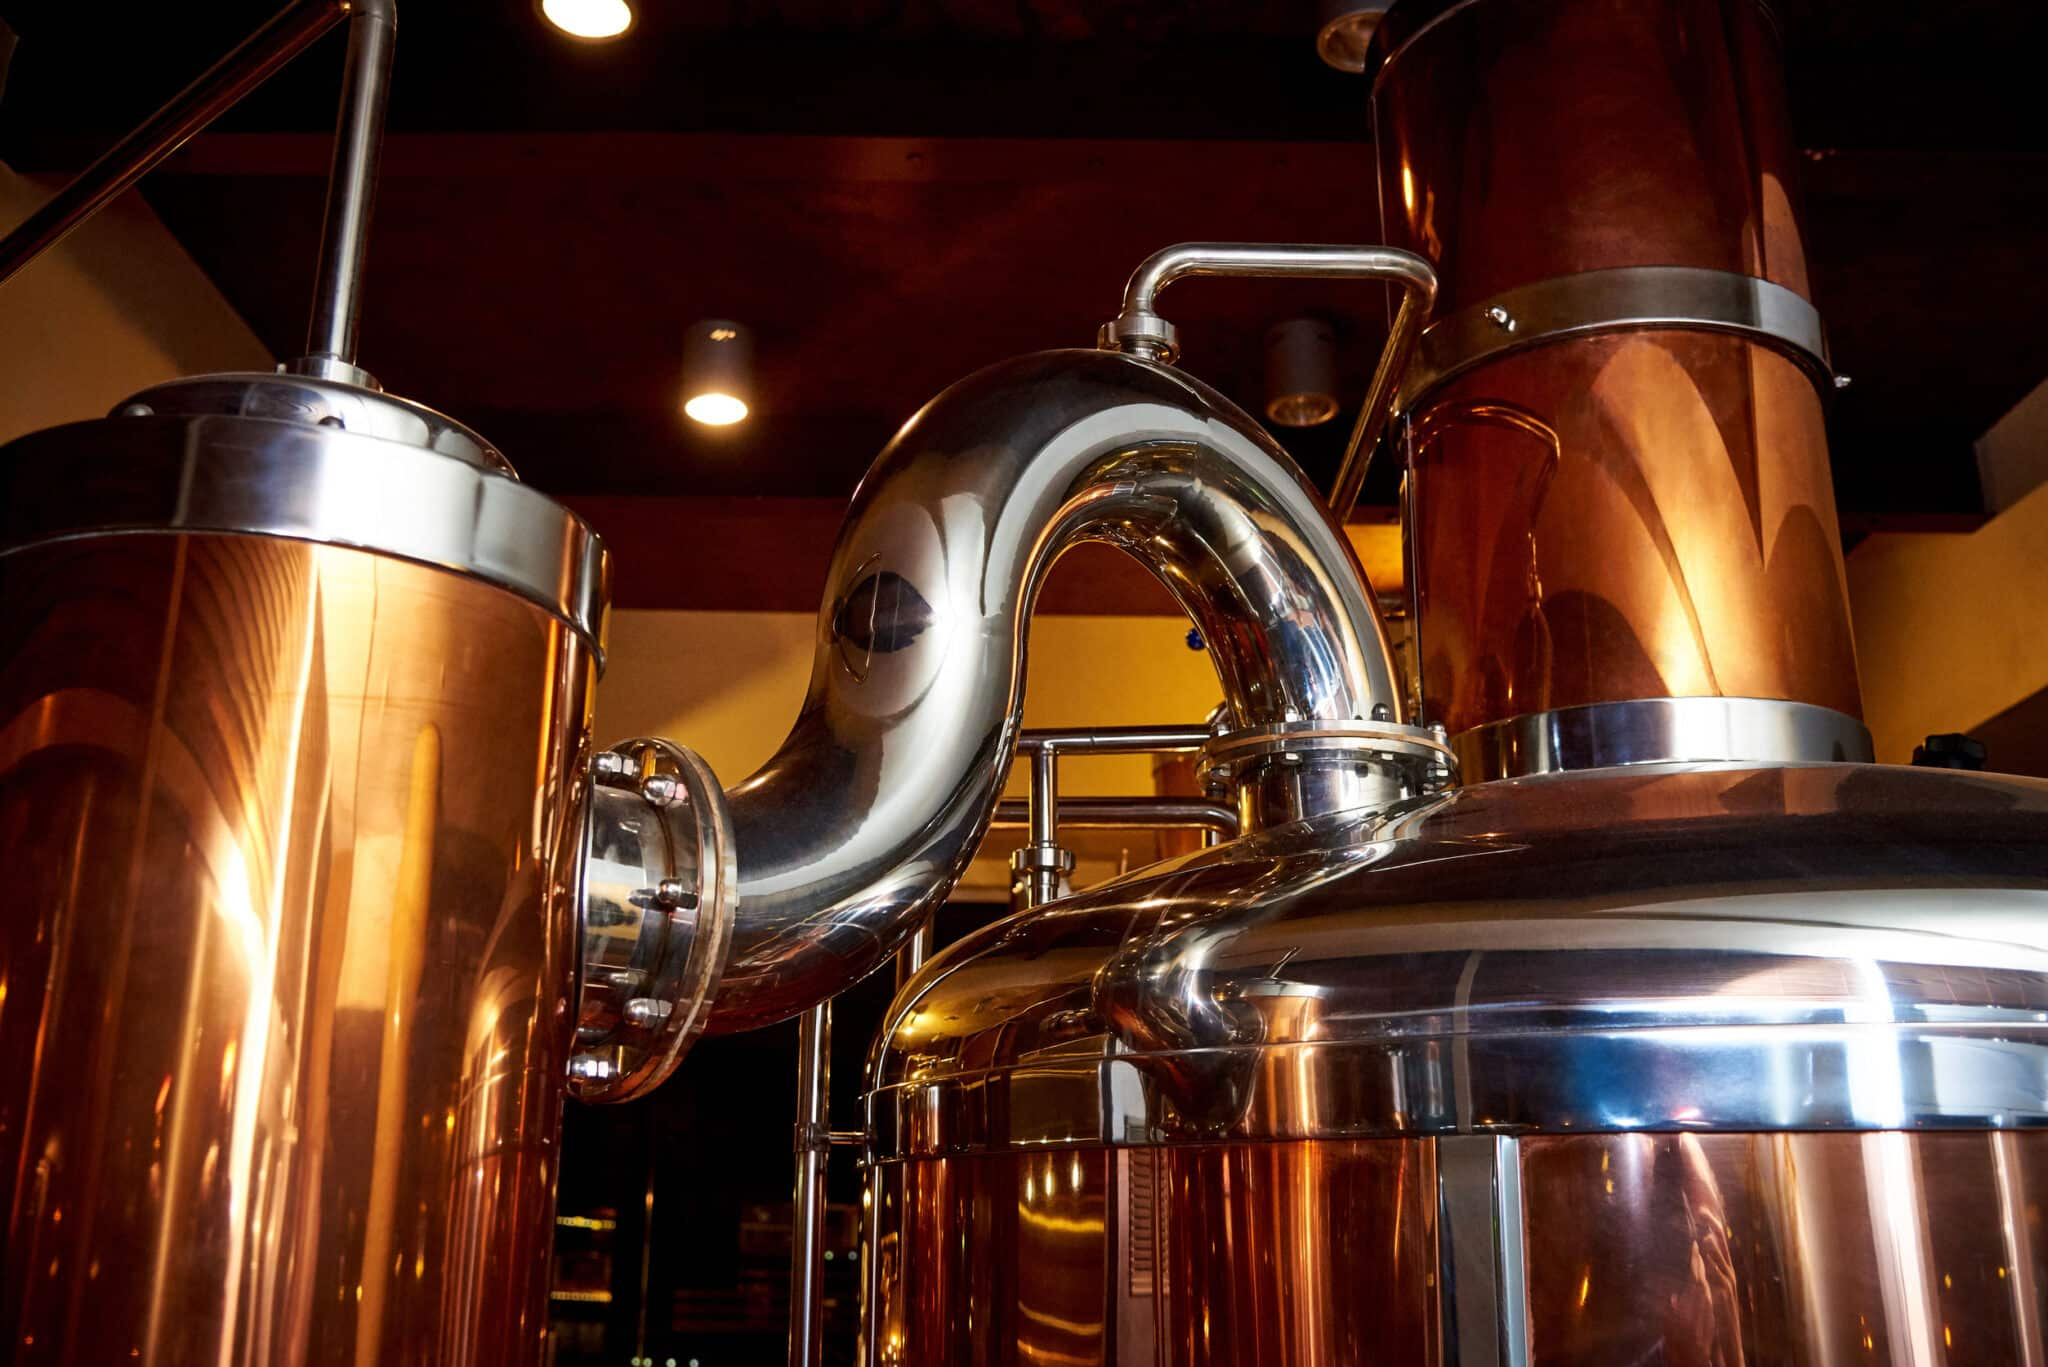 Breweries are eligibility for R&D Tax Relief